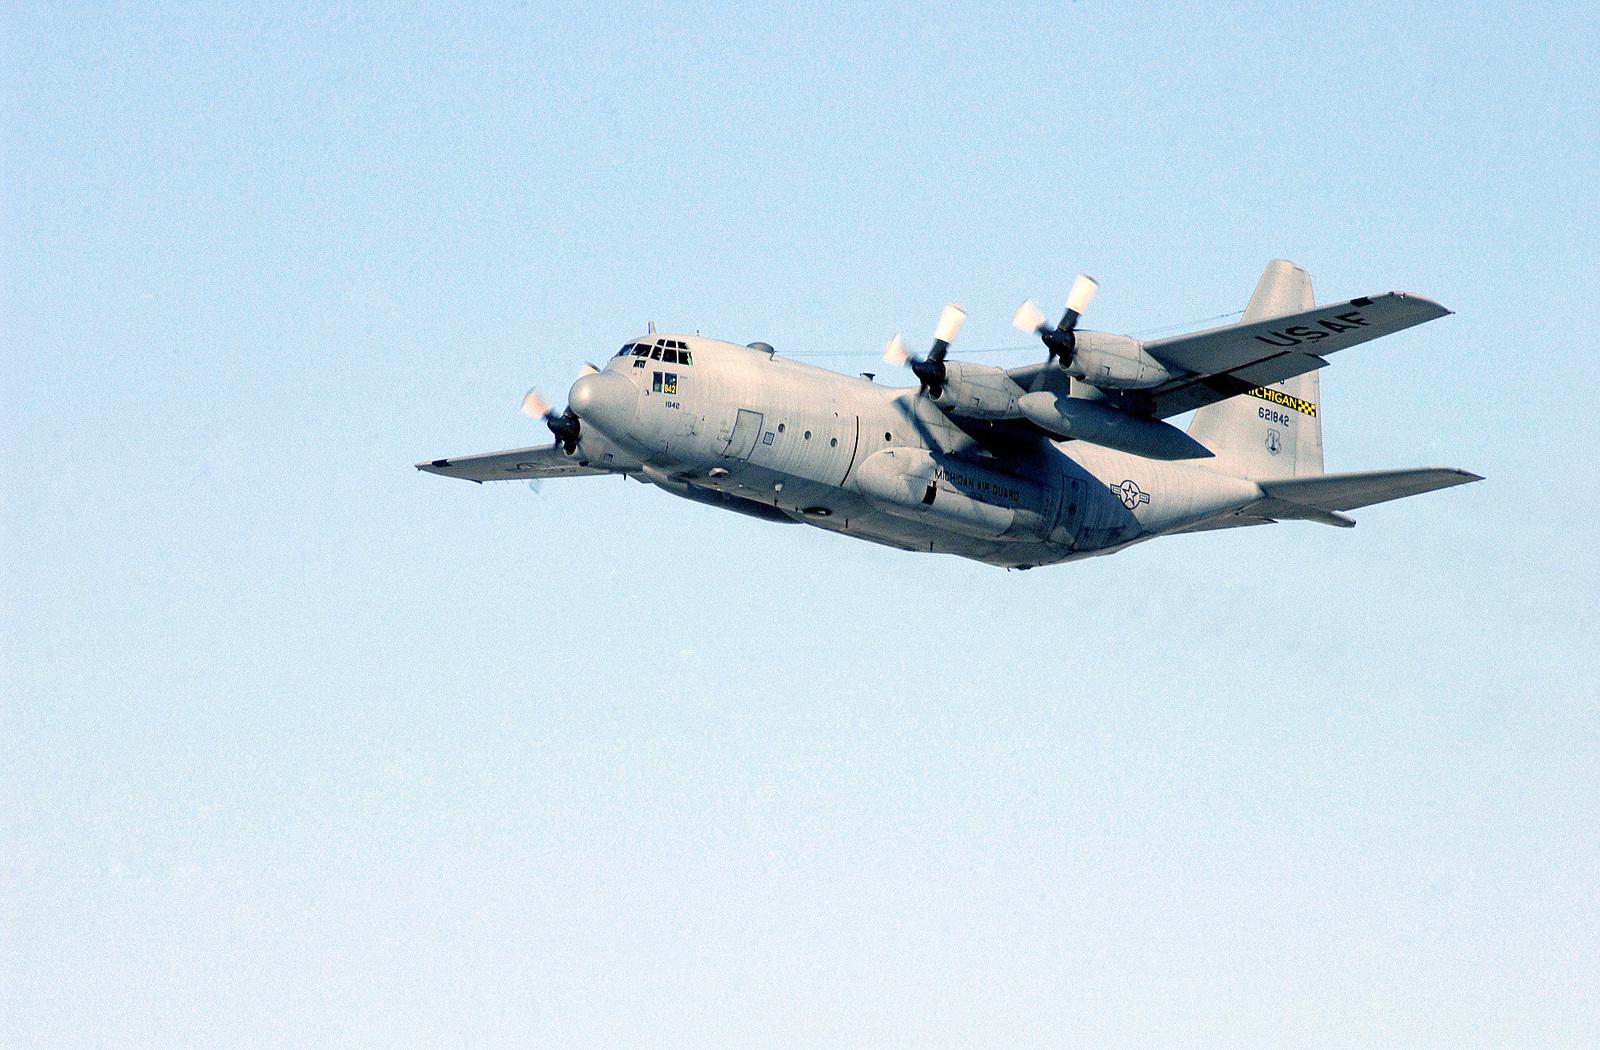 A US Air Force (USAF) C-130 Hercules aircraft from the 127th Wing, Michigan Air National Guard (ANG) dose a fly by at Selfridge Air National Guard Base (ANGB), Michigan (MI), during a training mission in support of Operation NOBLE EAGLE